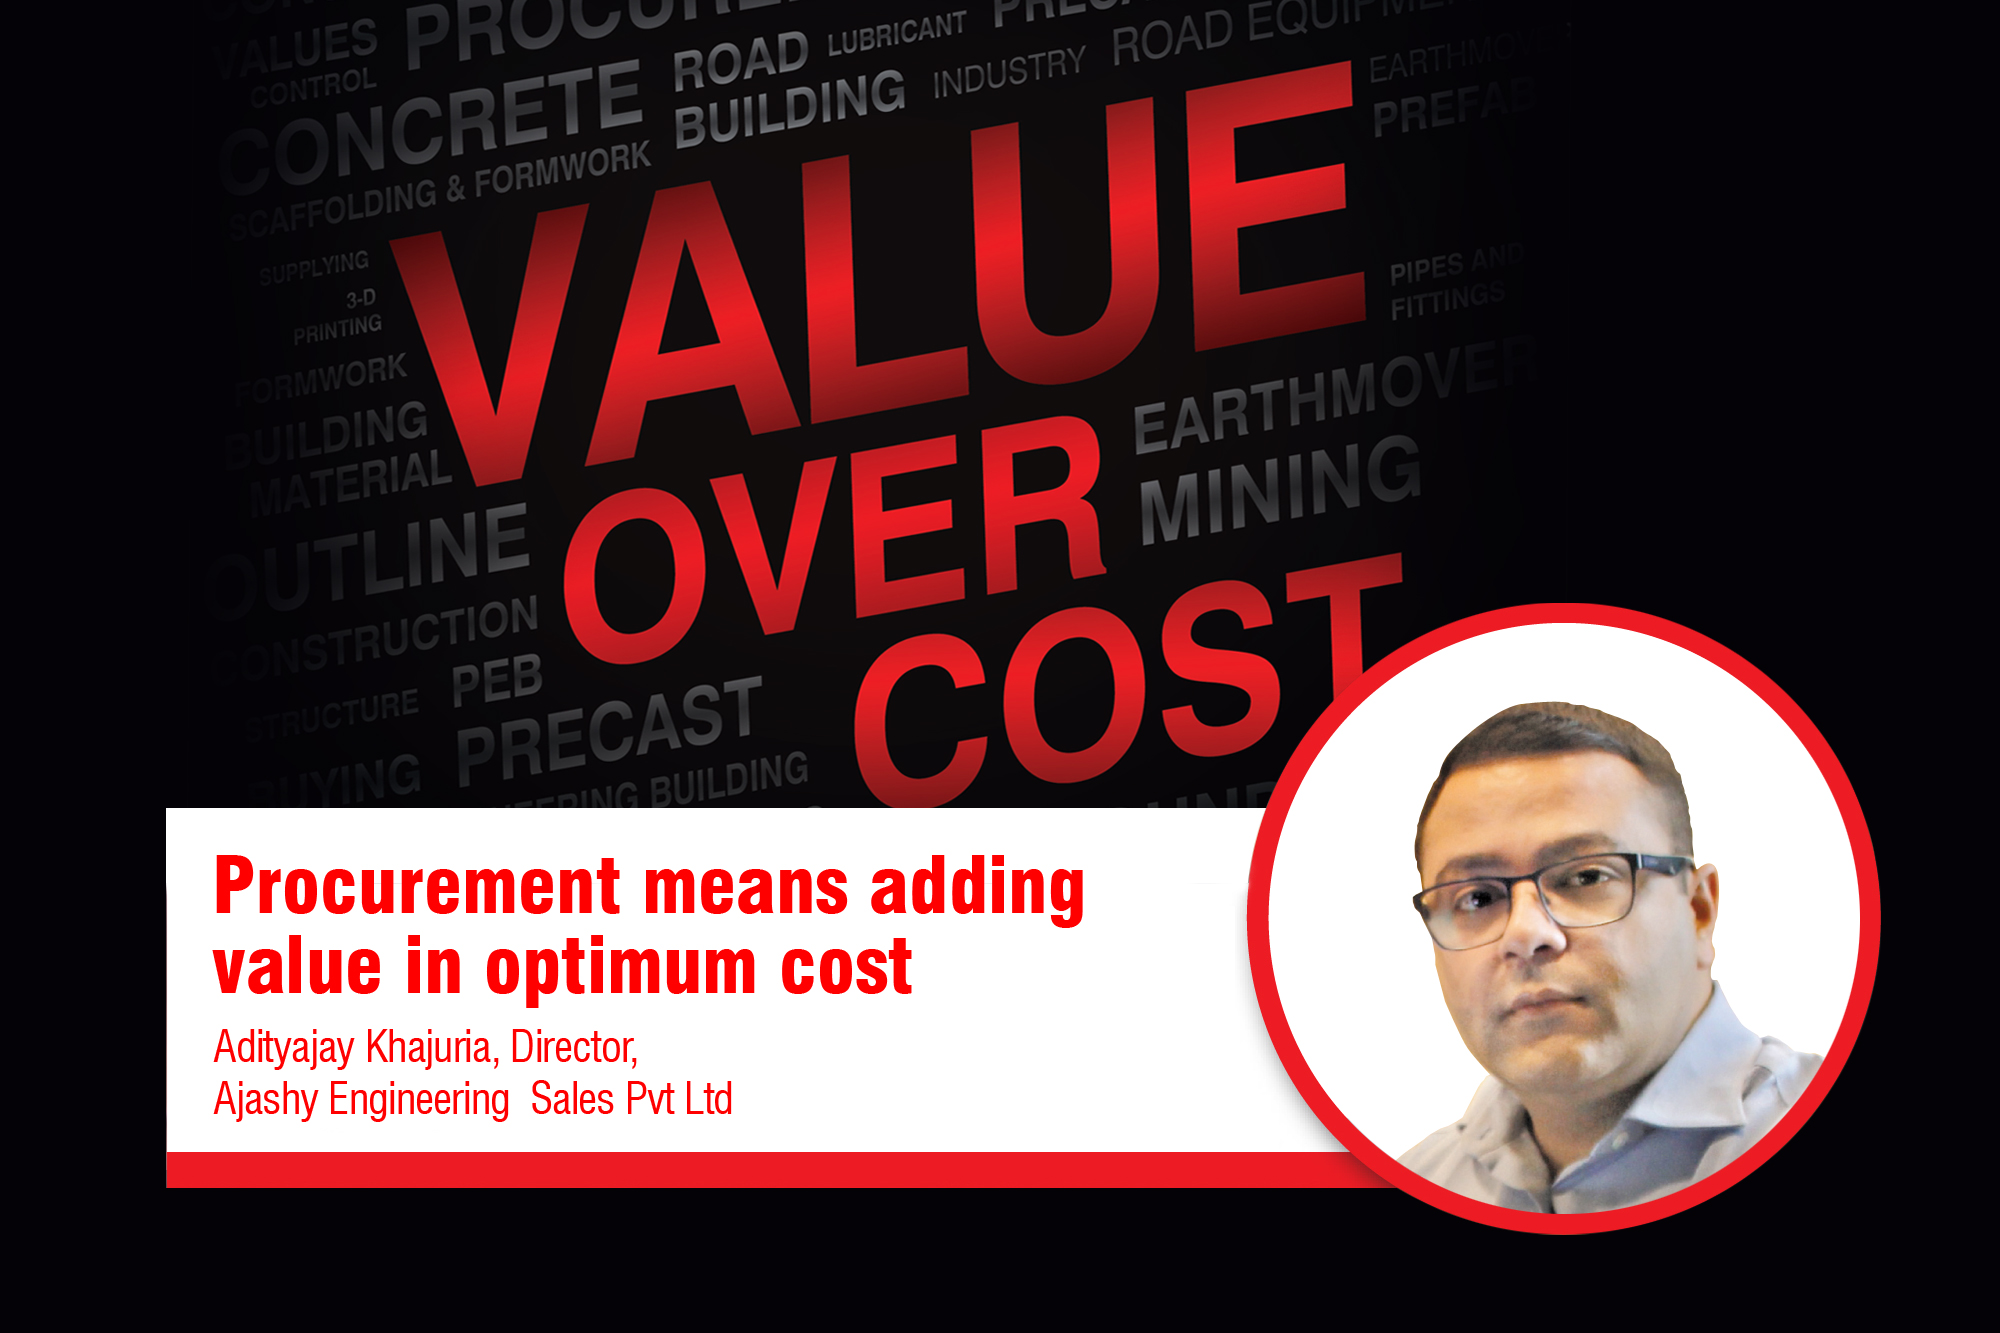 Procurement means adding value in optimum cost